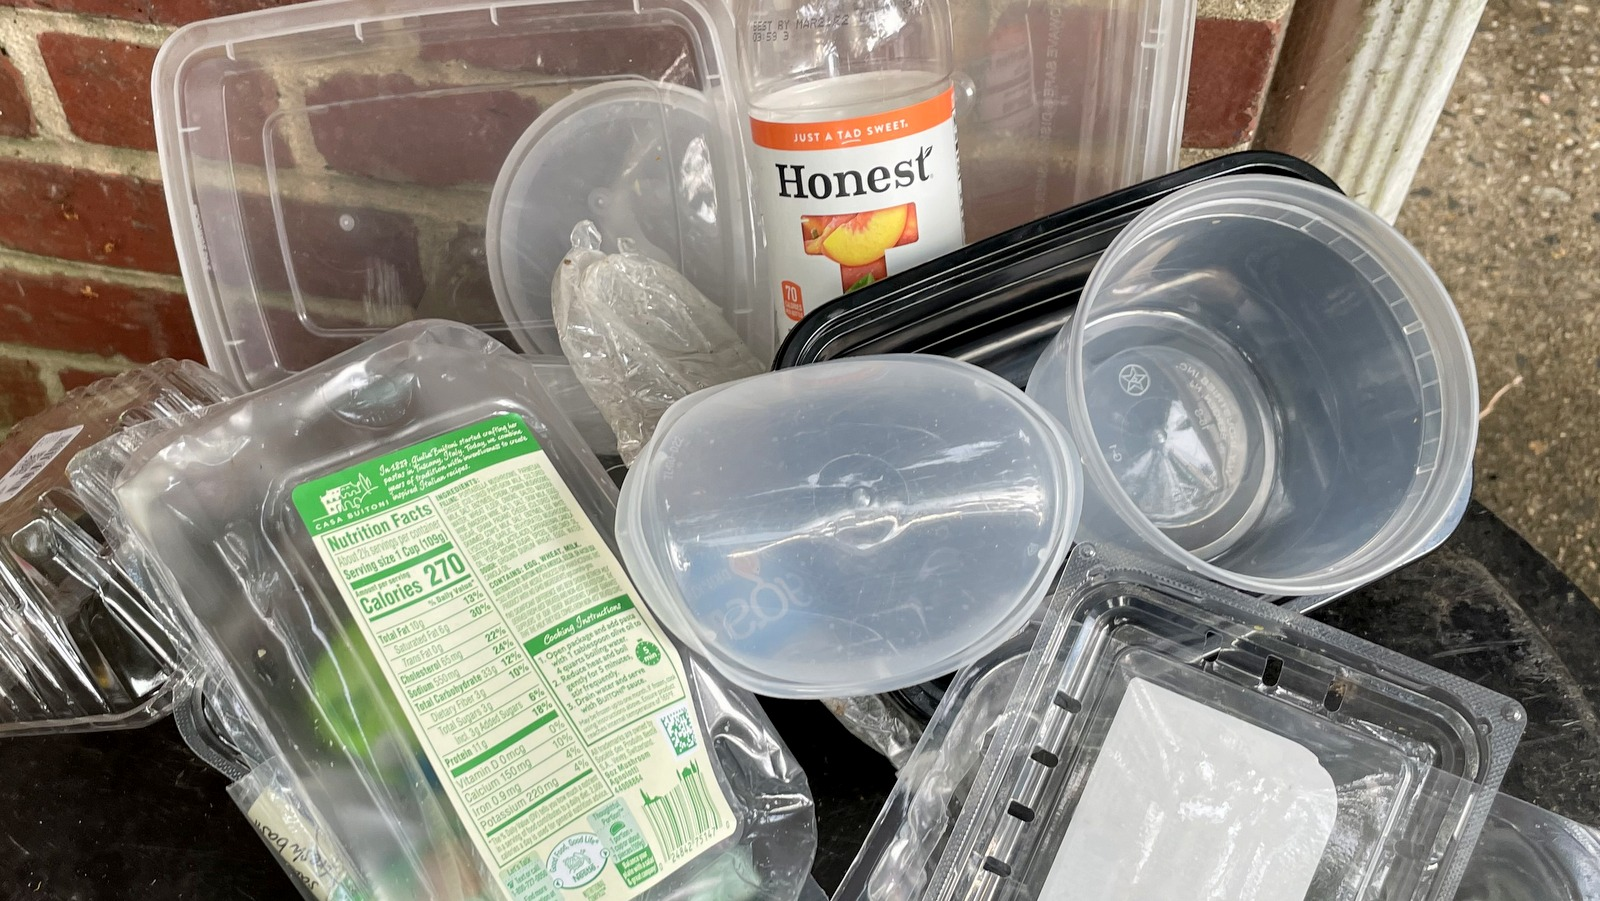 A new study says in Baltimore on average 112 pounds of plastic are burned per person each year. (Fern Shen)